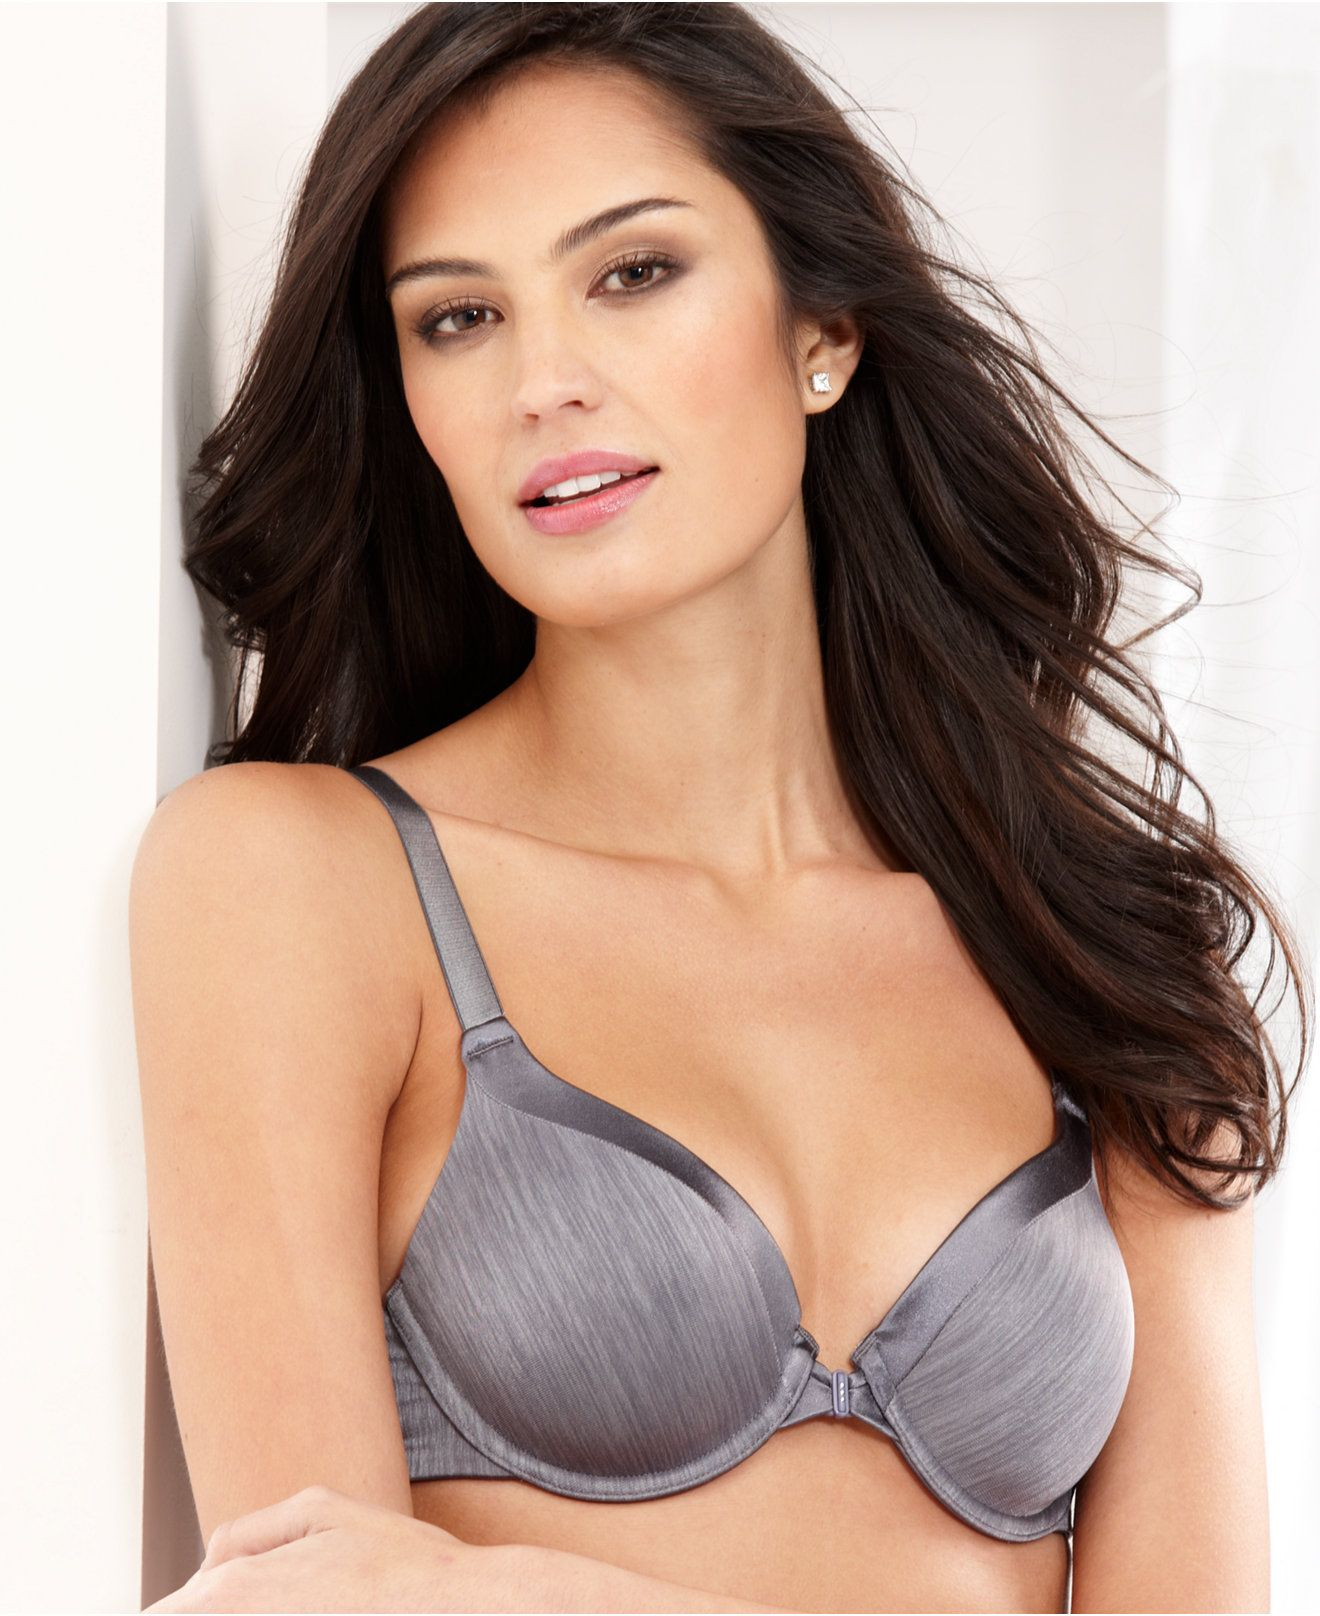 bras normal product in lyst body caress vanity bra contour coverage full gallery clothing ruby moroccan red fair